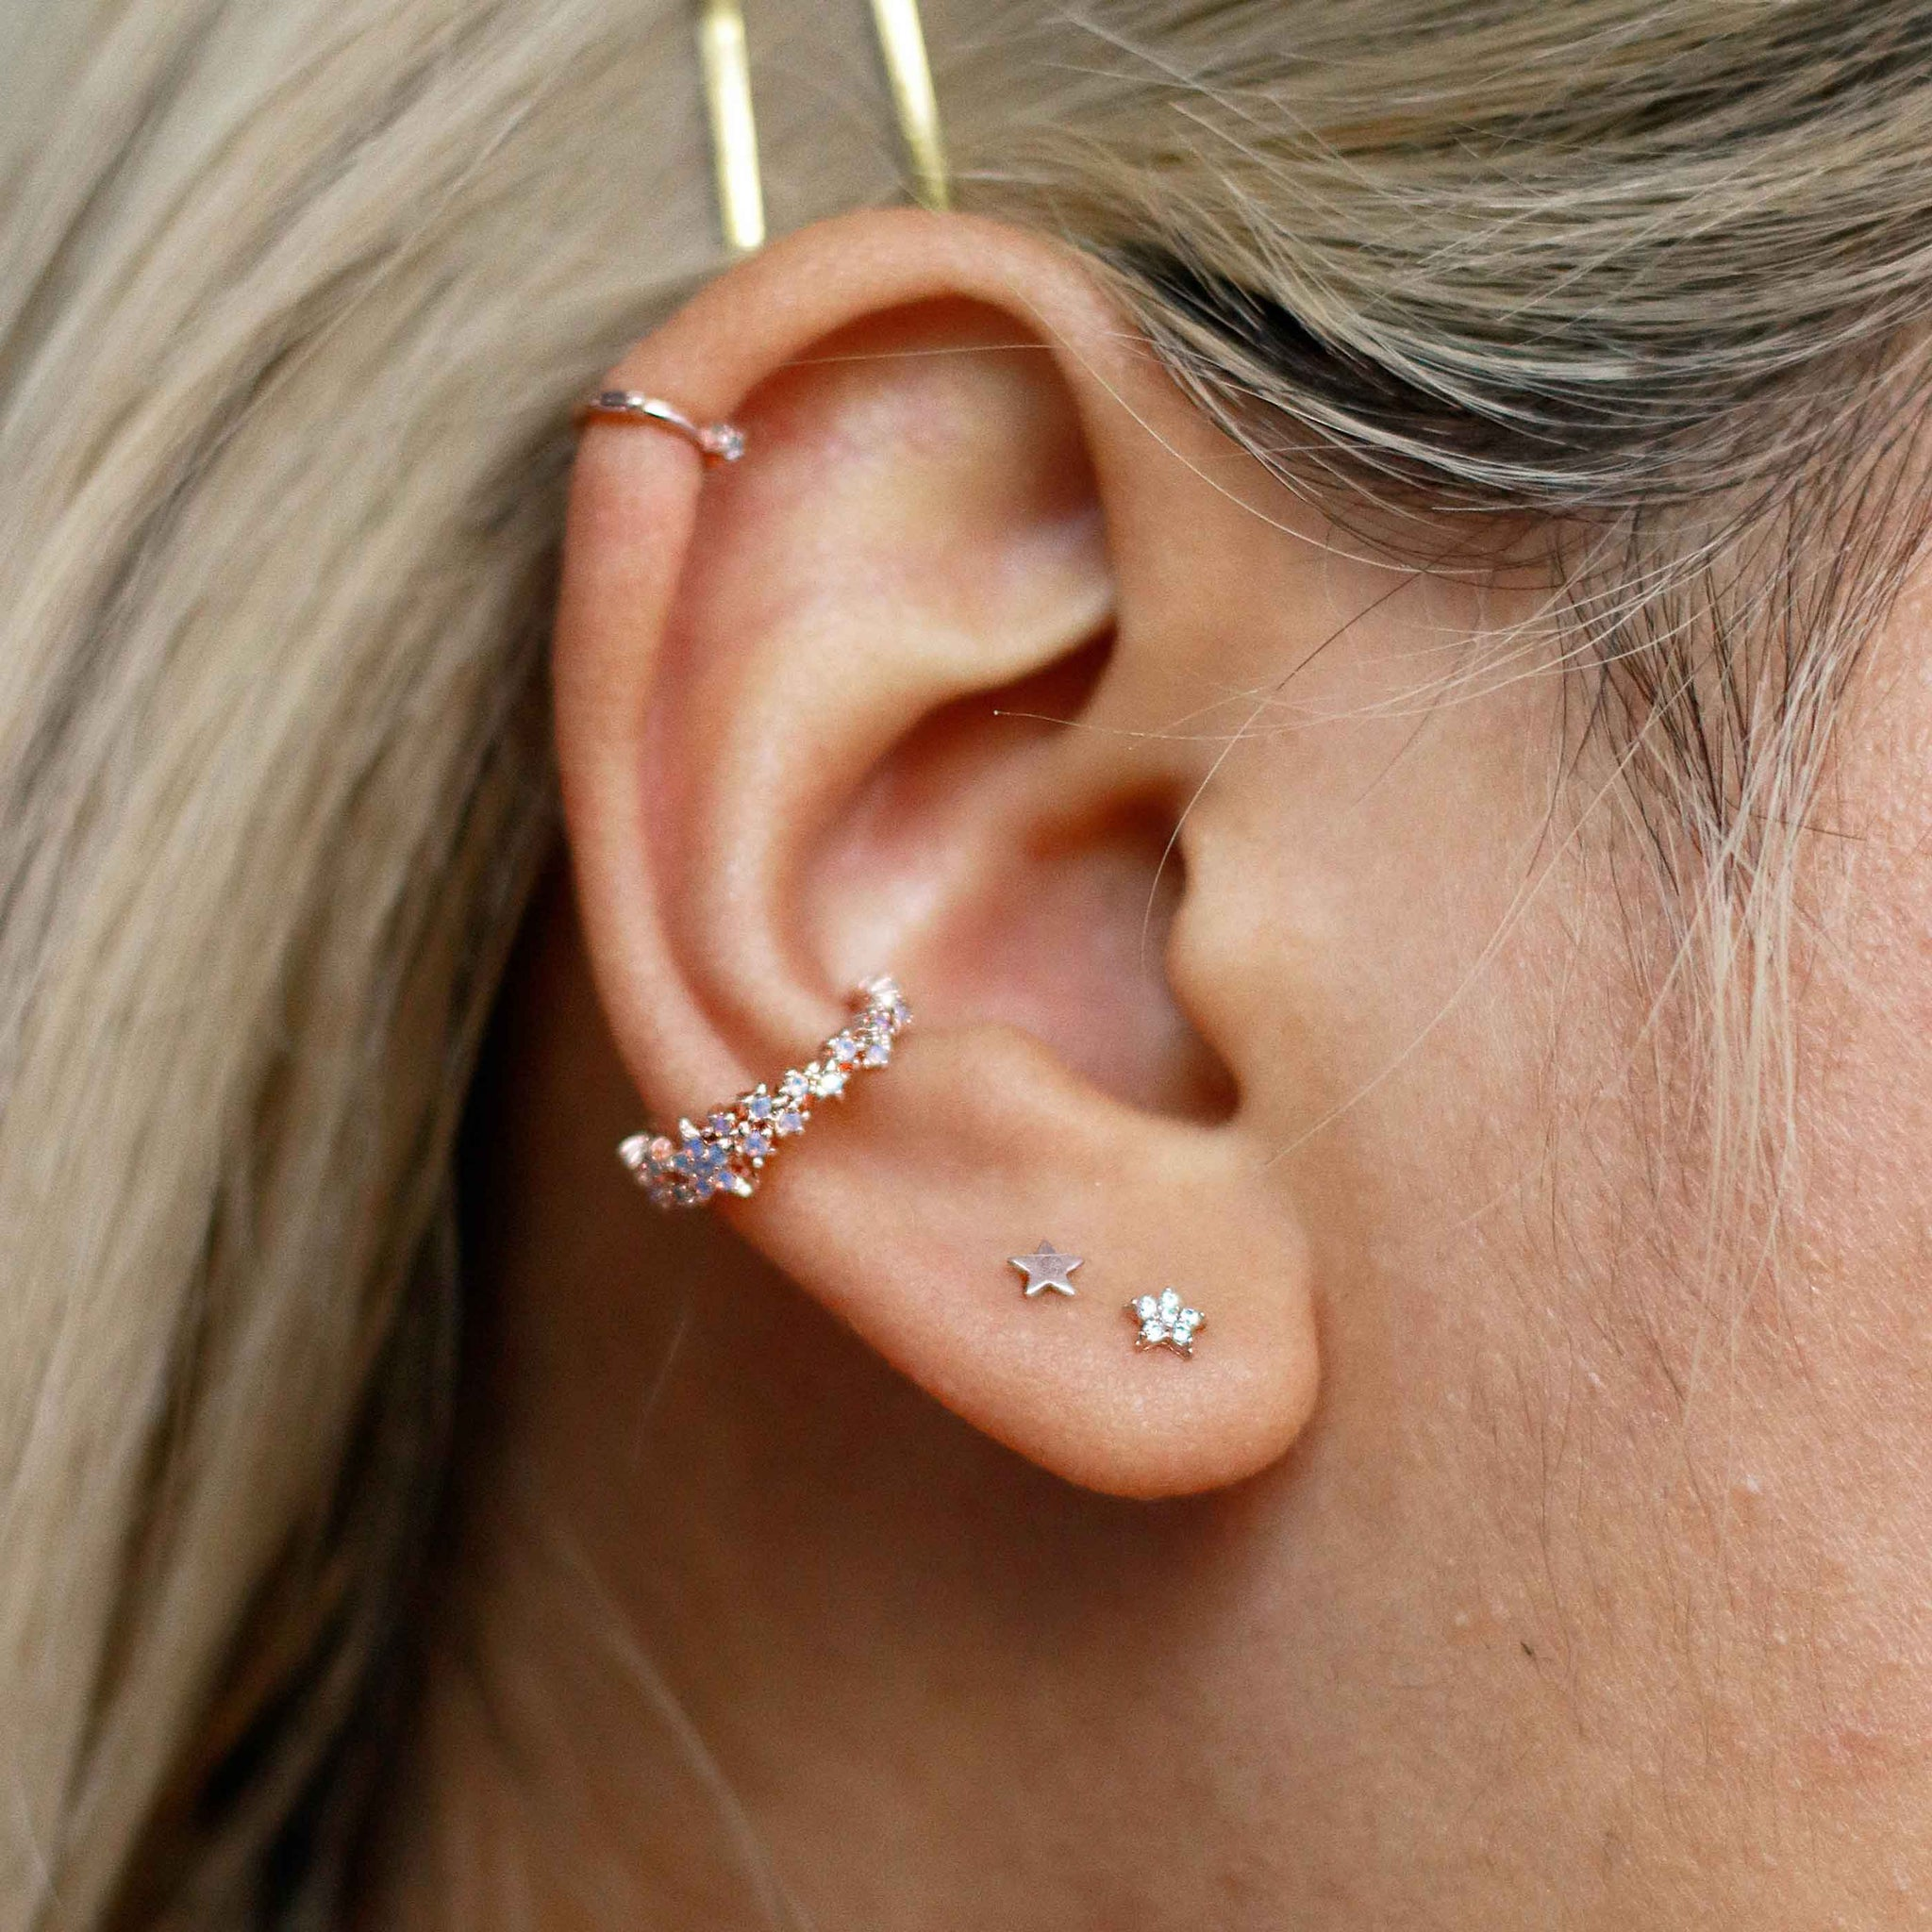 Mystic Star Ear Cuff in Rose Gold